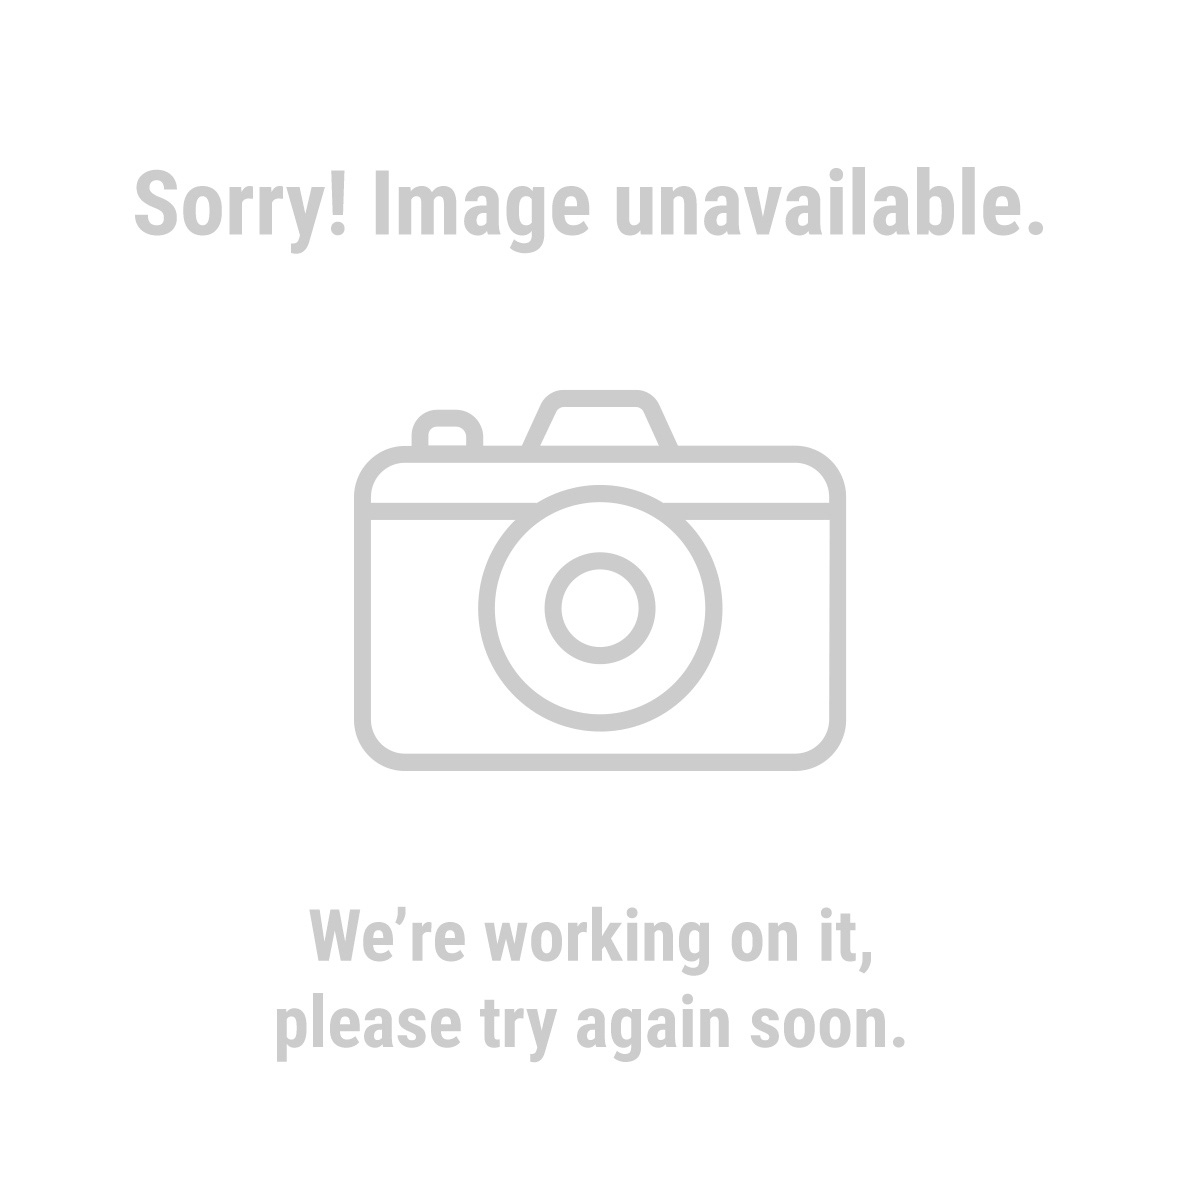 Warrior® 61584 3 in. Fine Grade Fiber Surface Conditioning Discs 5 Pc